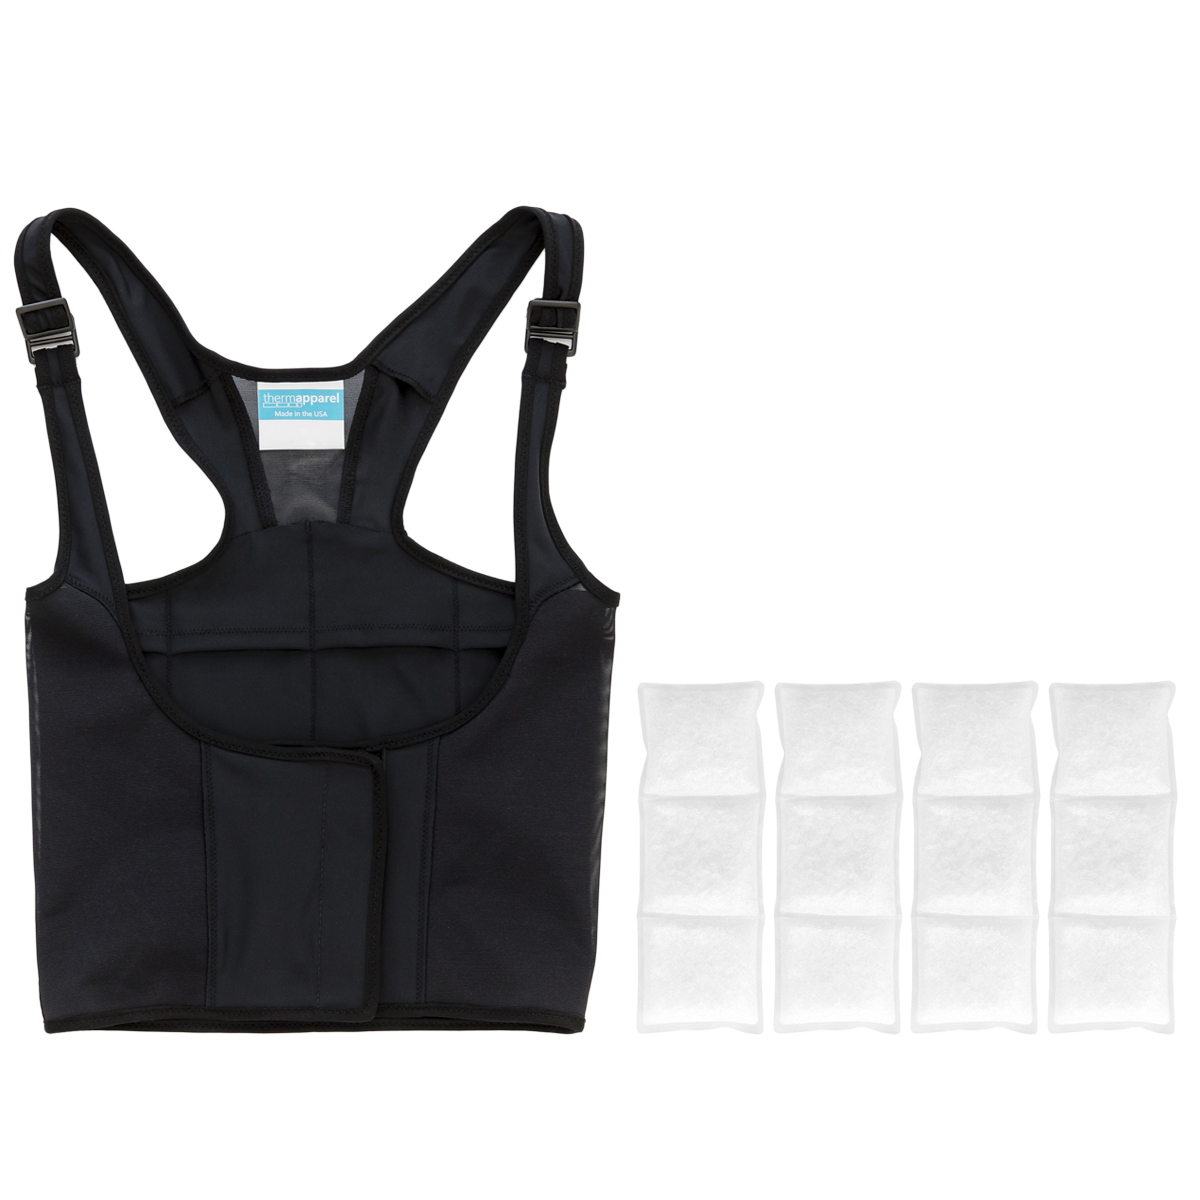 $199.99 UnderCool Bundle - 1 UnderCool Cooling Vest with 1 set (4) UnderCool PCM Cooling Packs